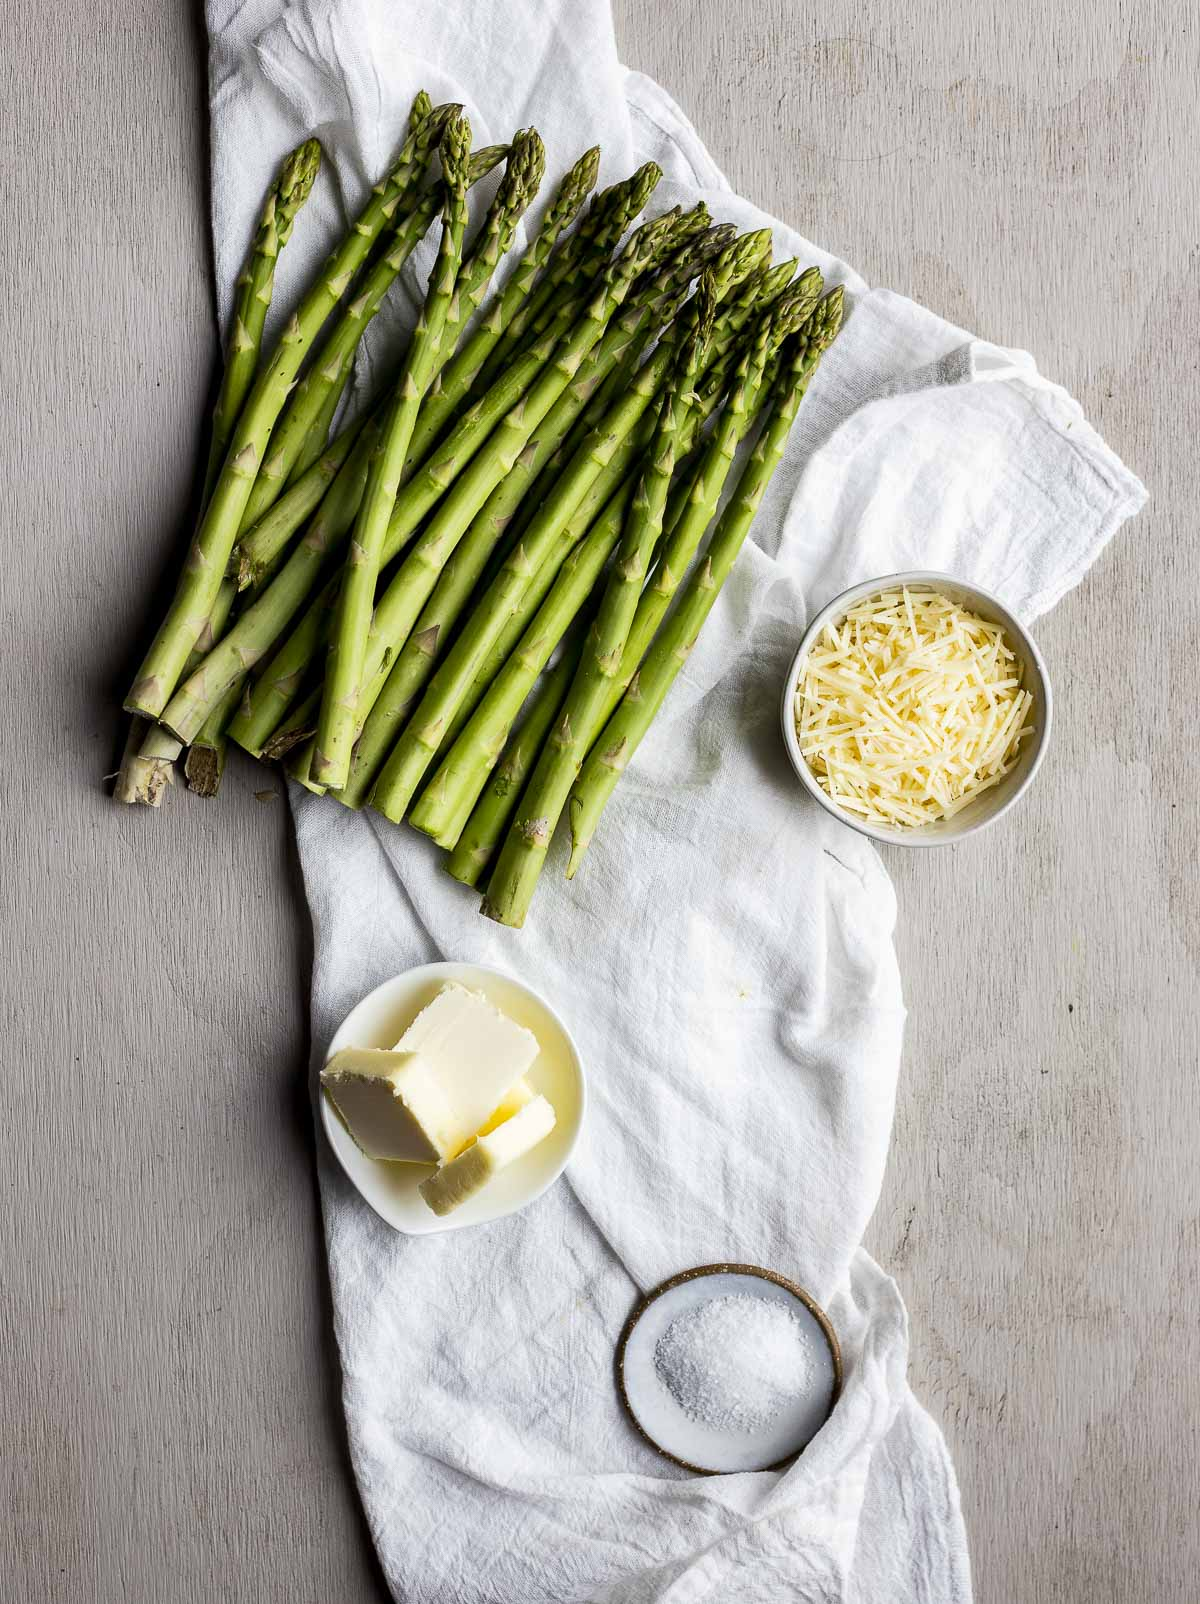 Ingredients to make sous vide asparagus arranged individually on a white cloth.